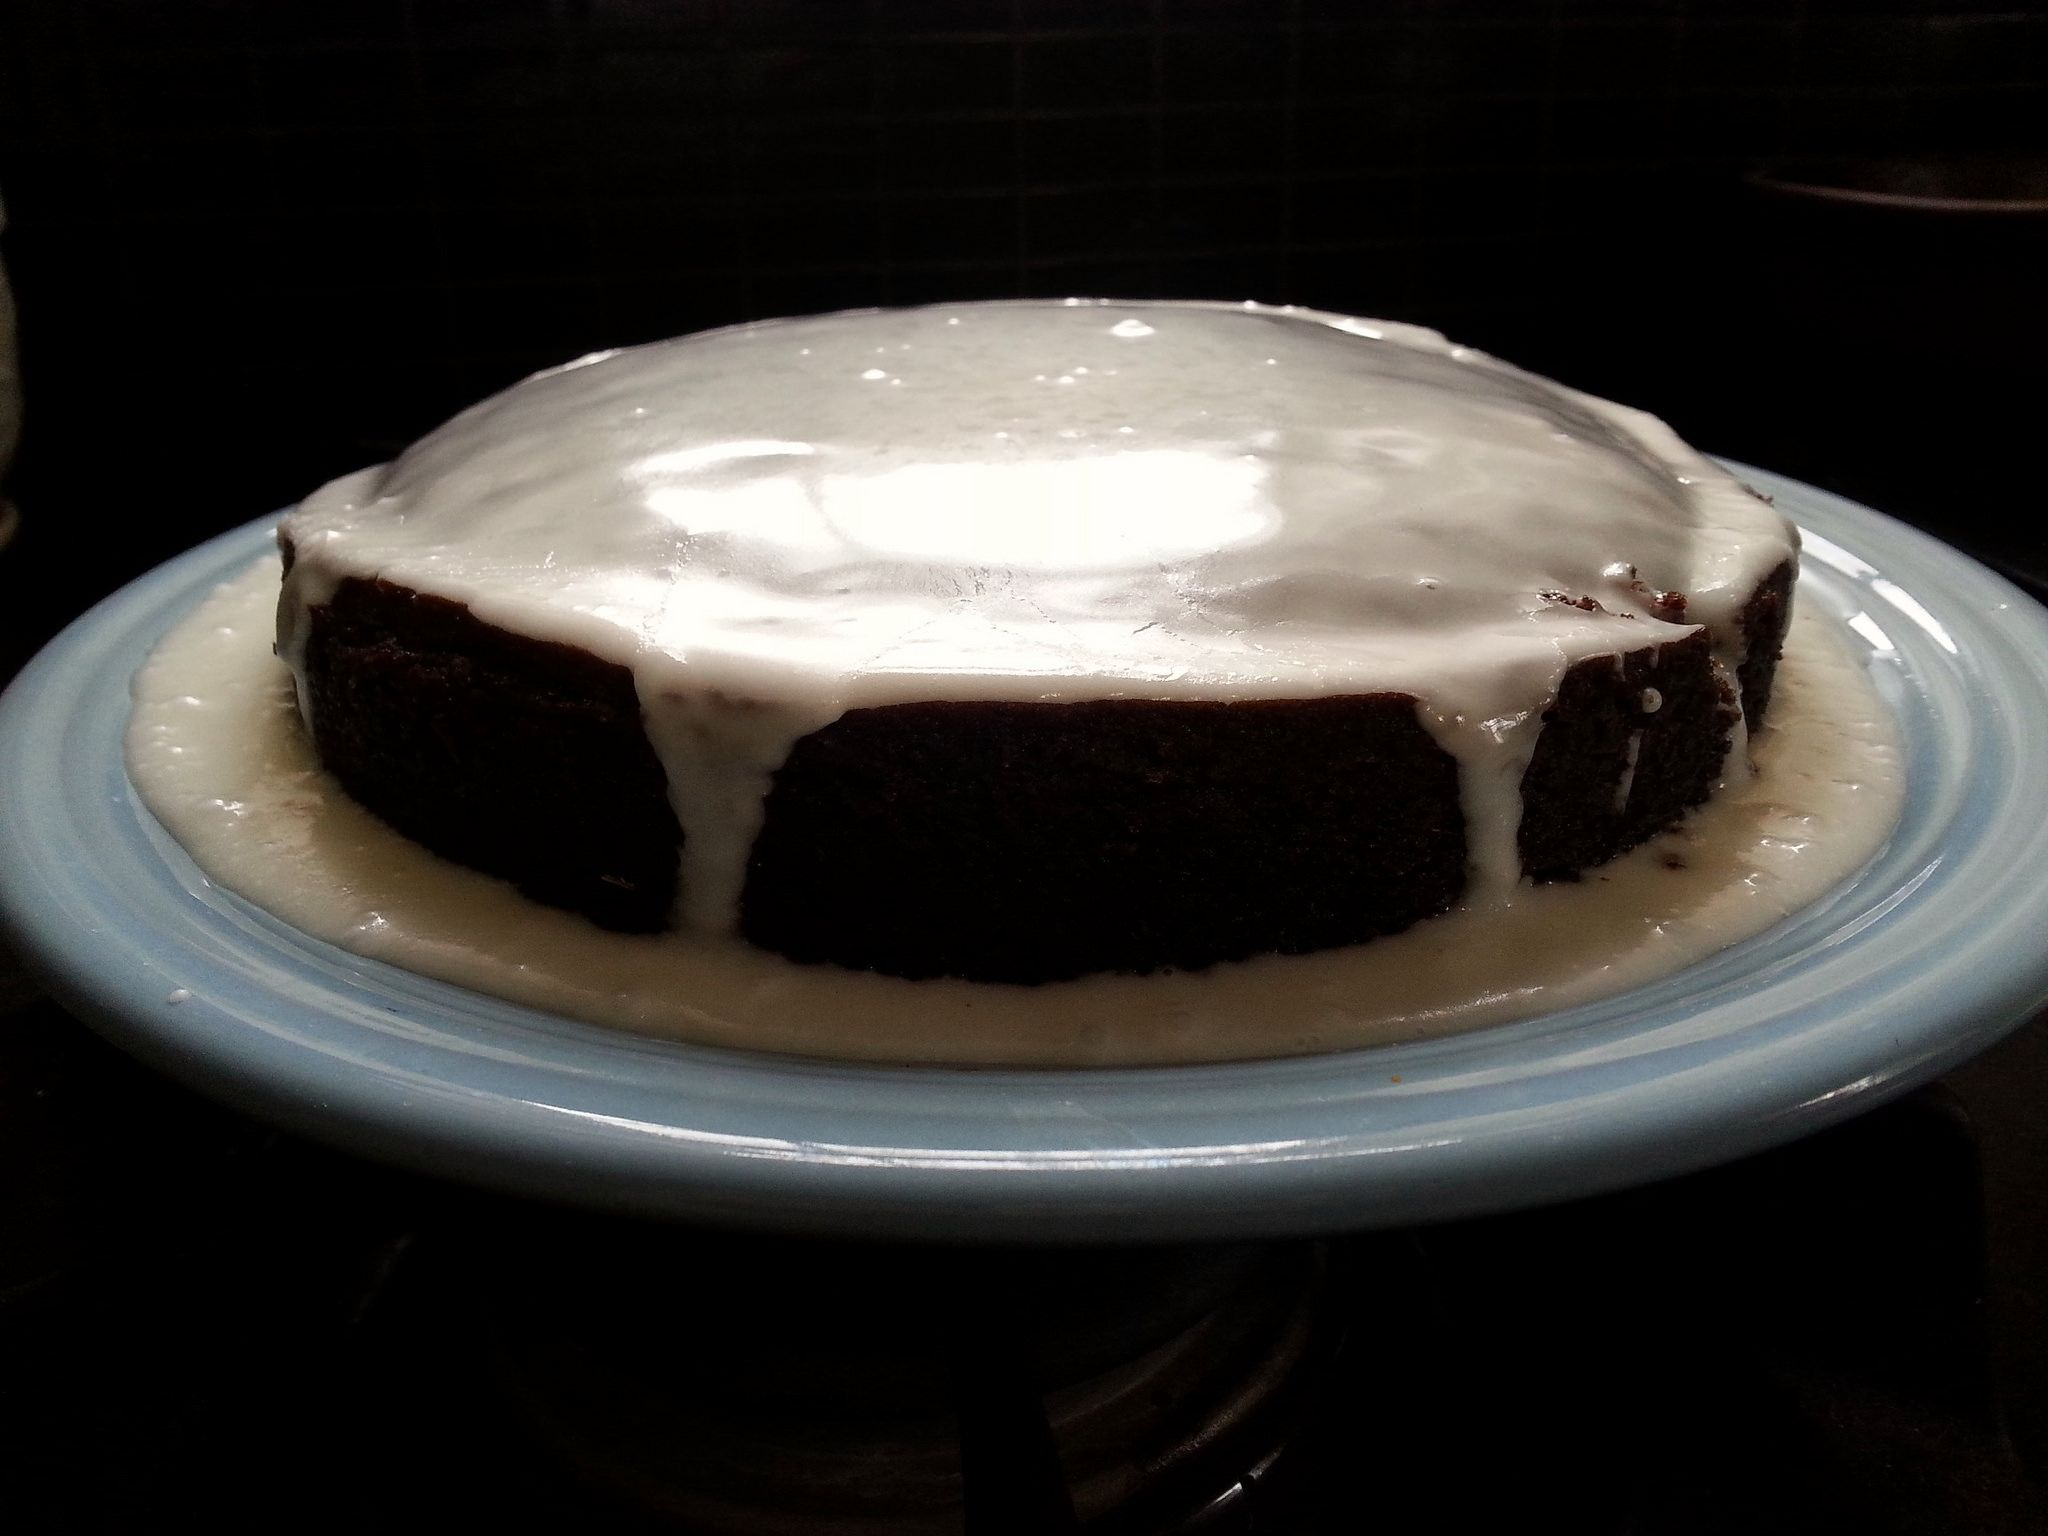 https://flic.kr/p/FMnKdc | Margaret Fox's Amazon chocolate cake | For some reason I thought it needed a glaze moat. Anyway, it's a fun cake without eggs. The ingredients are simple. recipe: f52.co/1dlTLJS